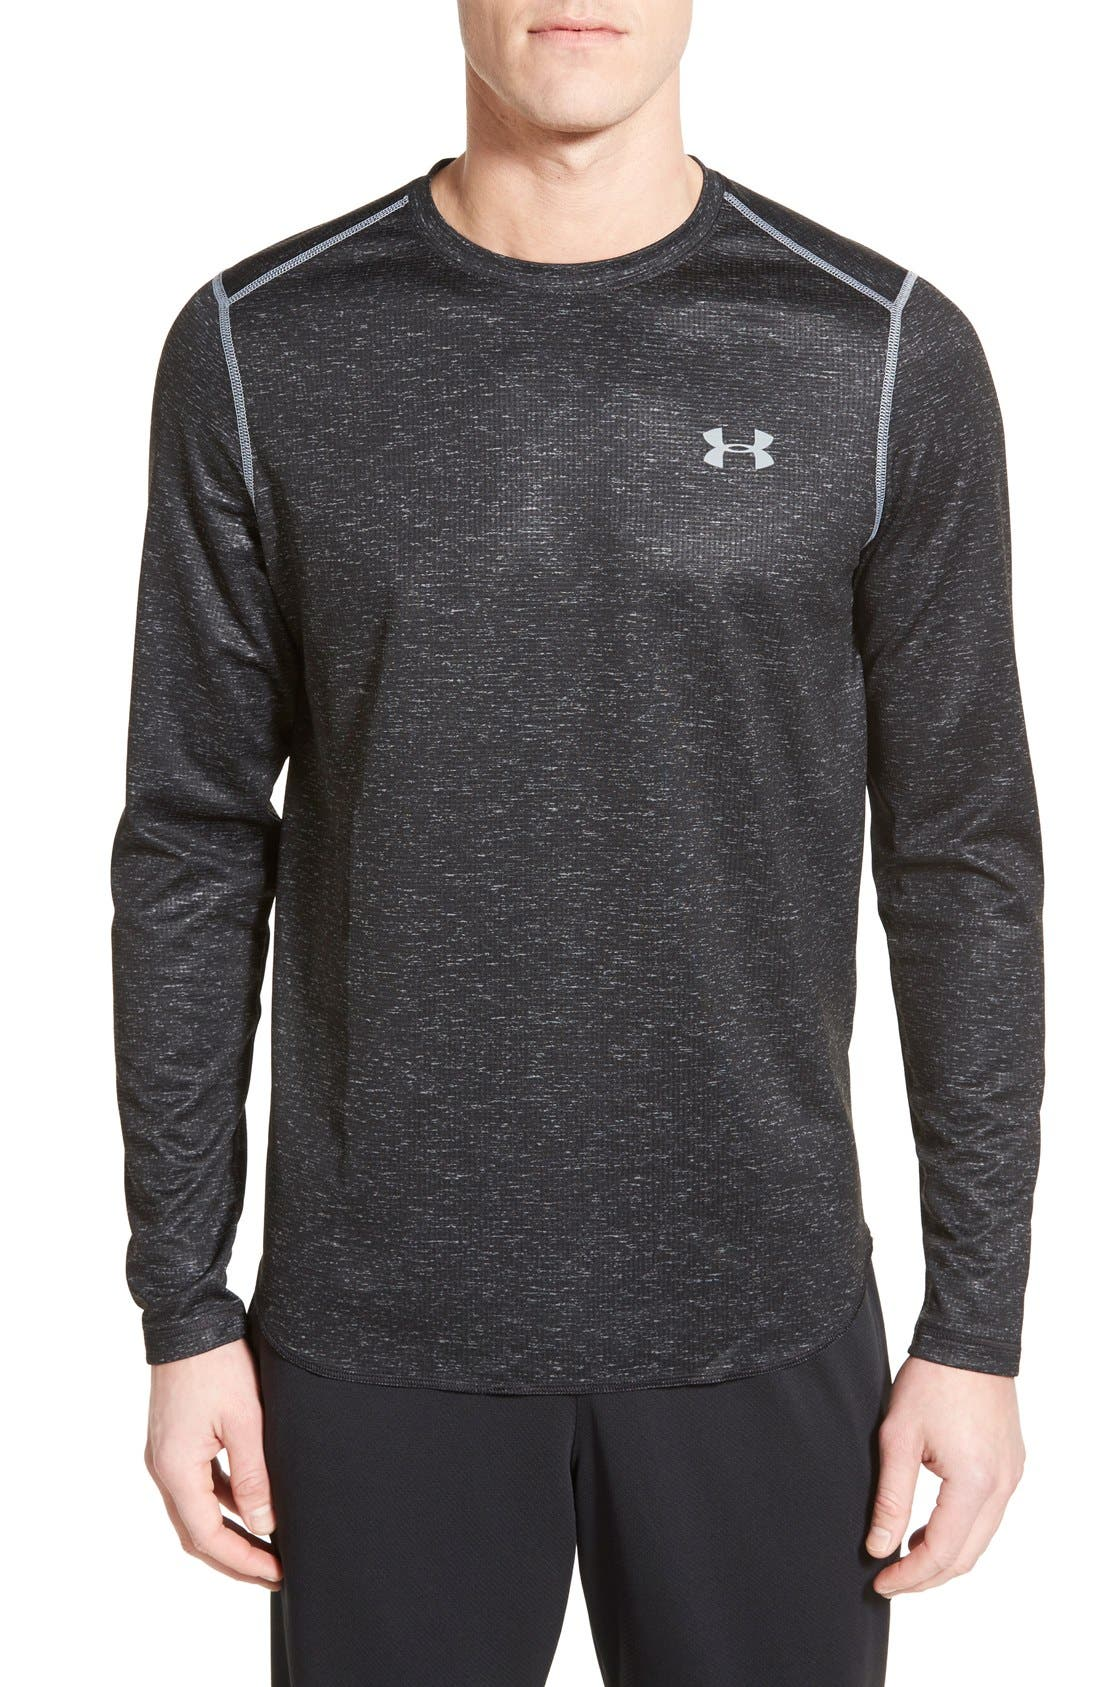 Main Image - Under Armour Tech™ Long Sleeve Waffle Knit T-Shirt